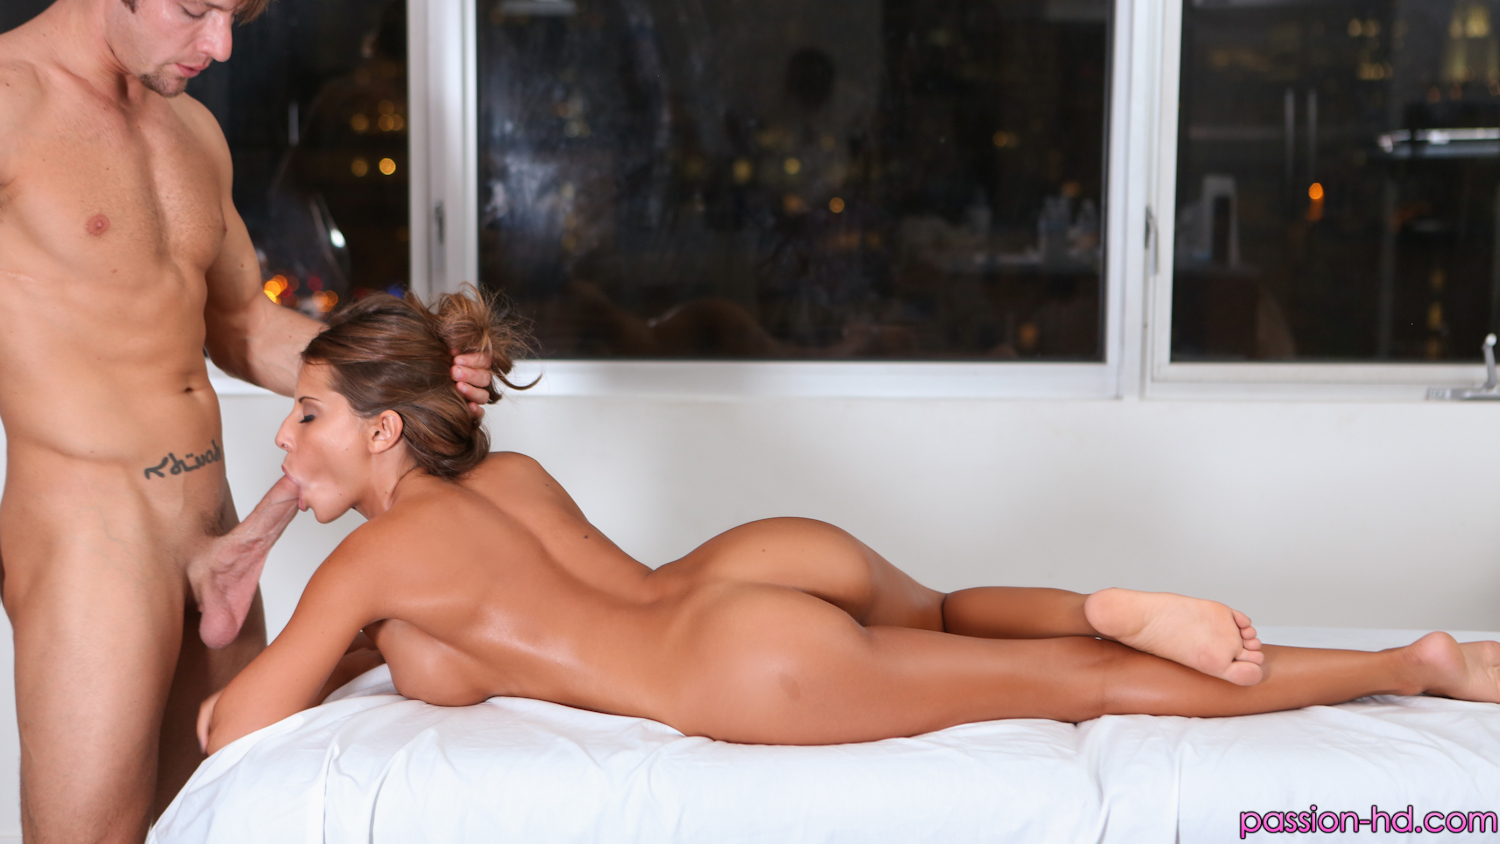 Passion Hd Madison Ivy Passion Hd dcaffecfaadfafed. go b